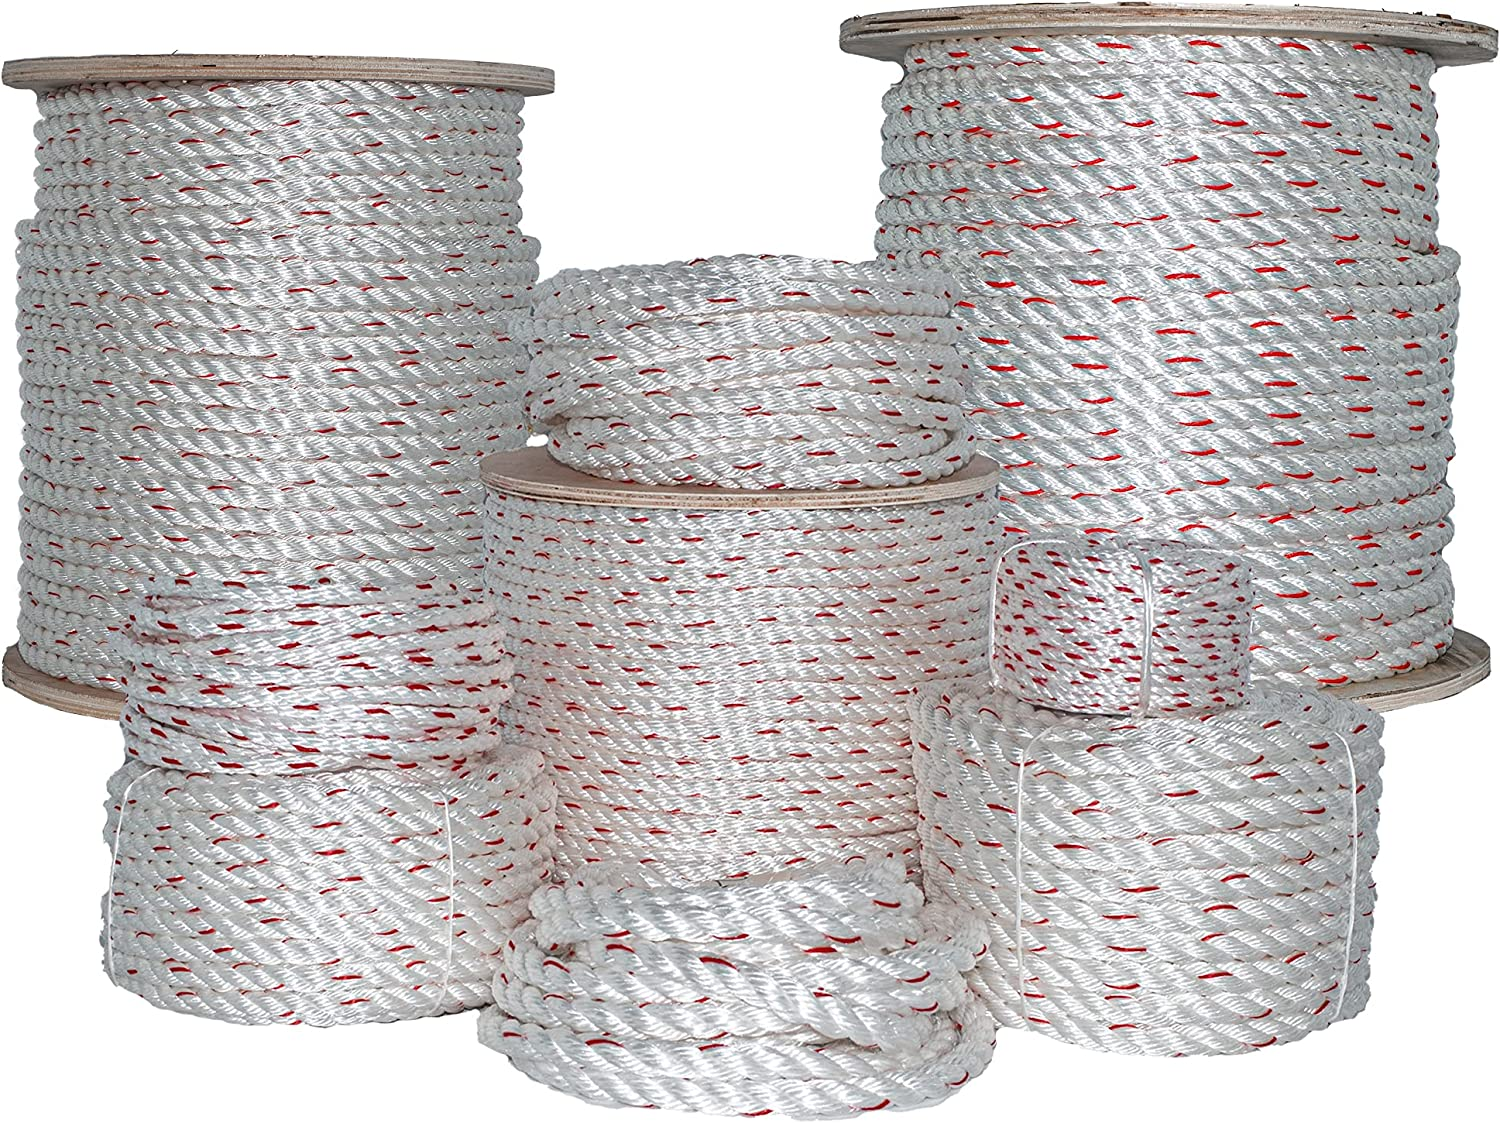 Max 49% OFF SGT KNOTS Twisted Poly Dacron Rope Line Challenge the lowest price of Japan ☆ Strand with Polyolef - 3